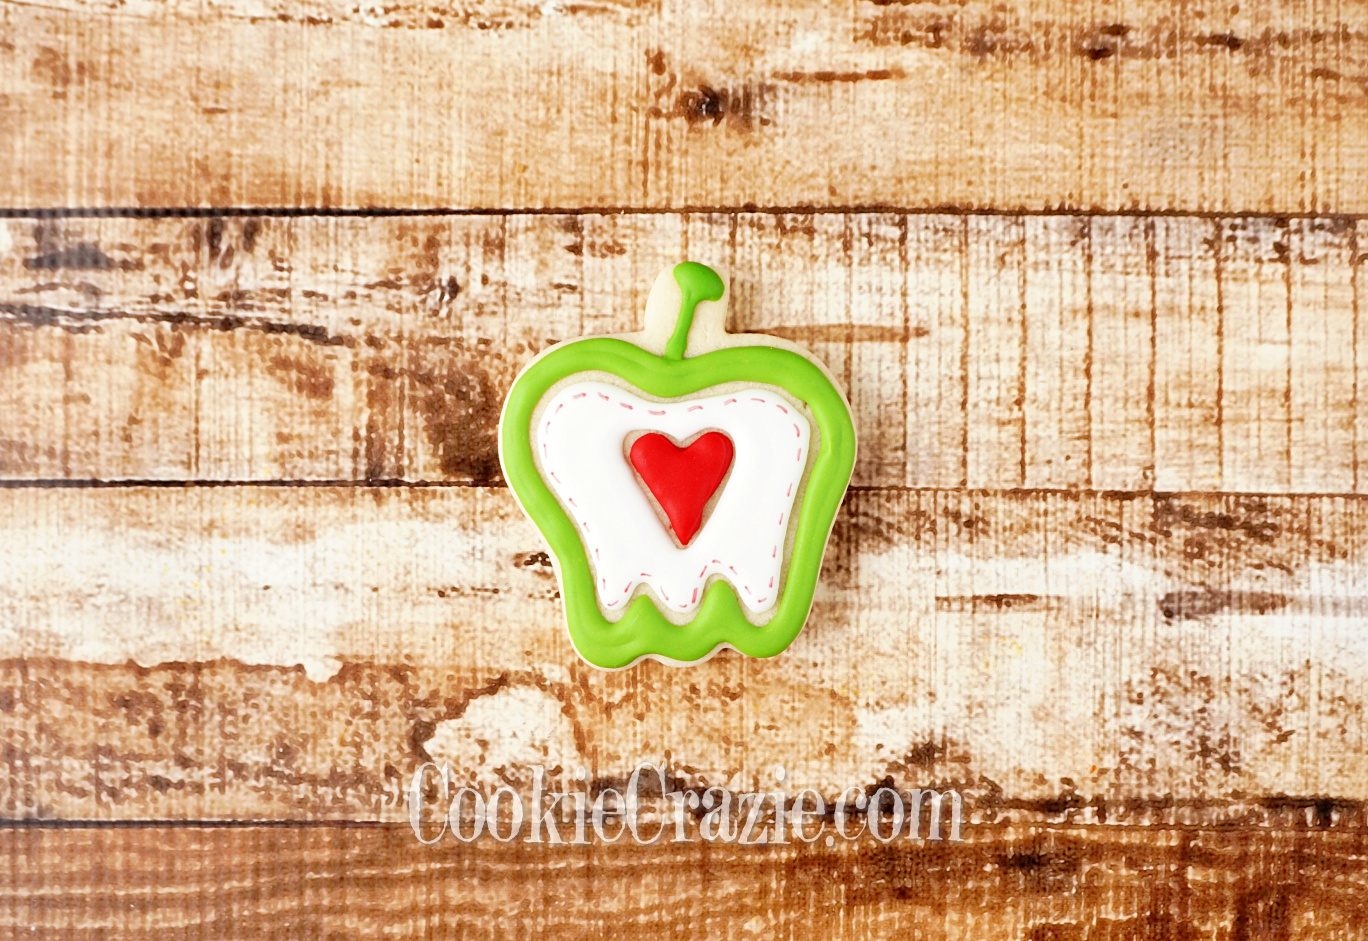 Apple with Heart Decorated Sugar Cookie YouTube  HERE